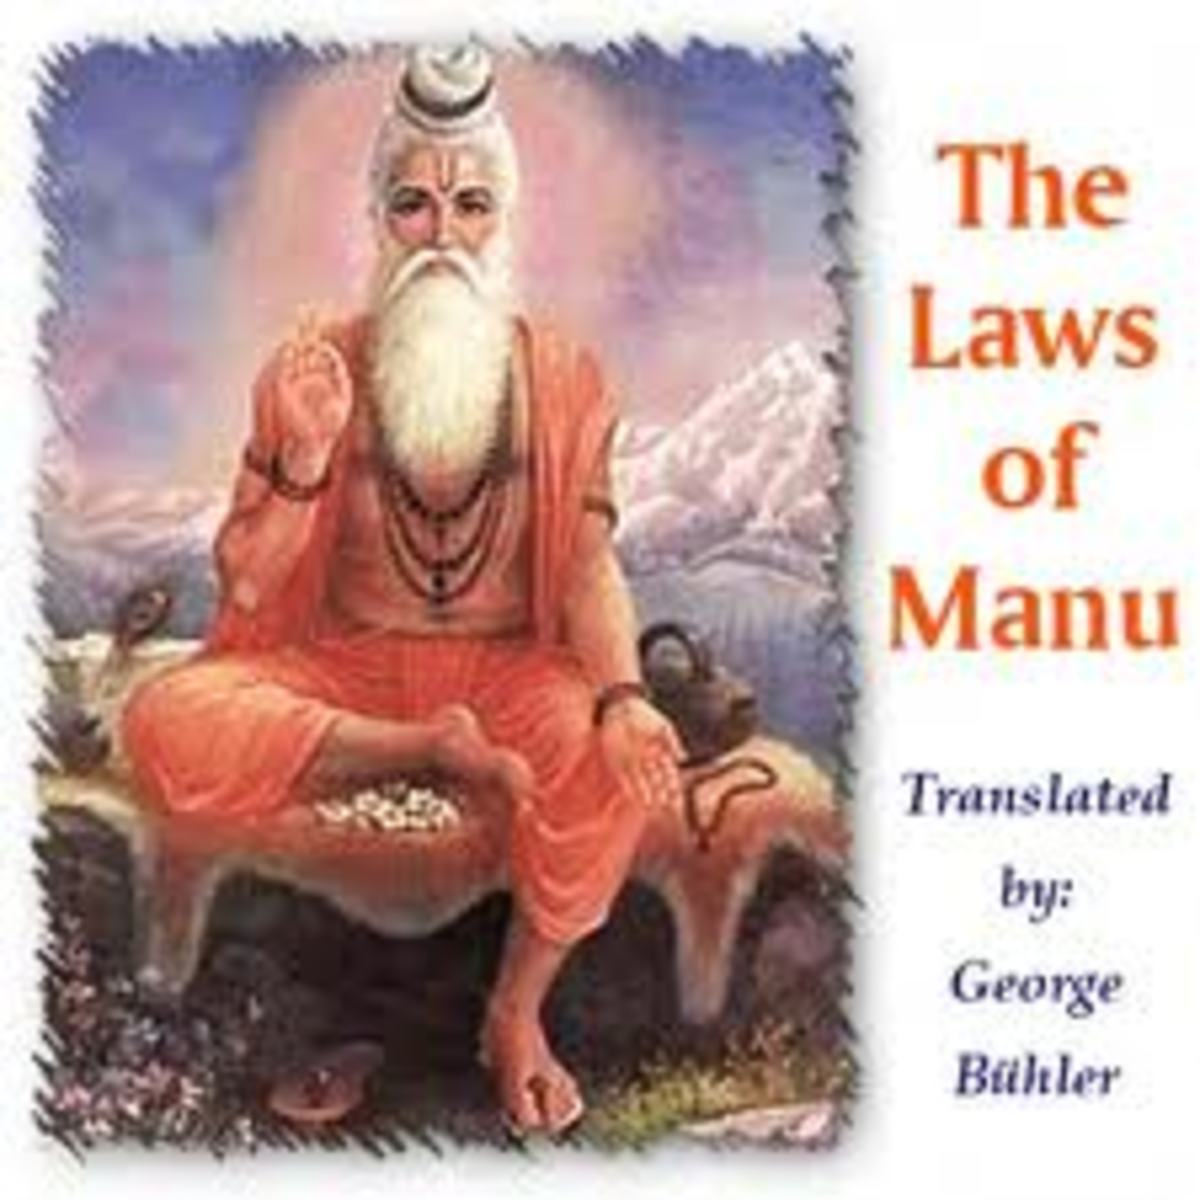 Indian religions; The Laws of Manu is a very old Indian religious book.